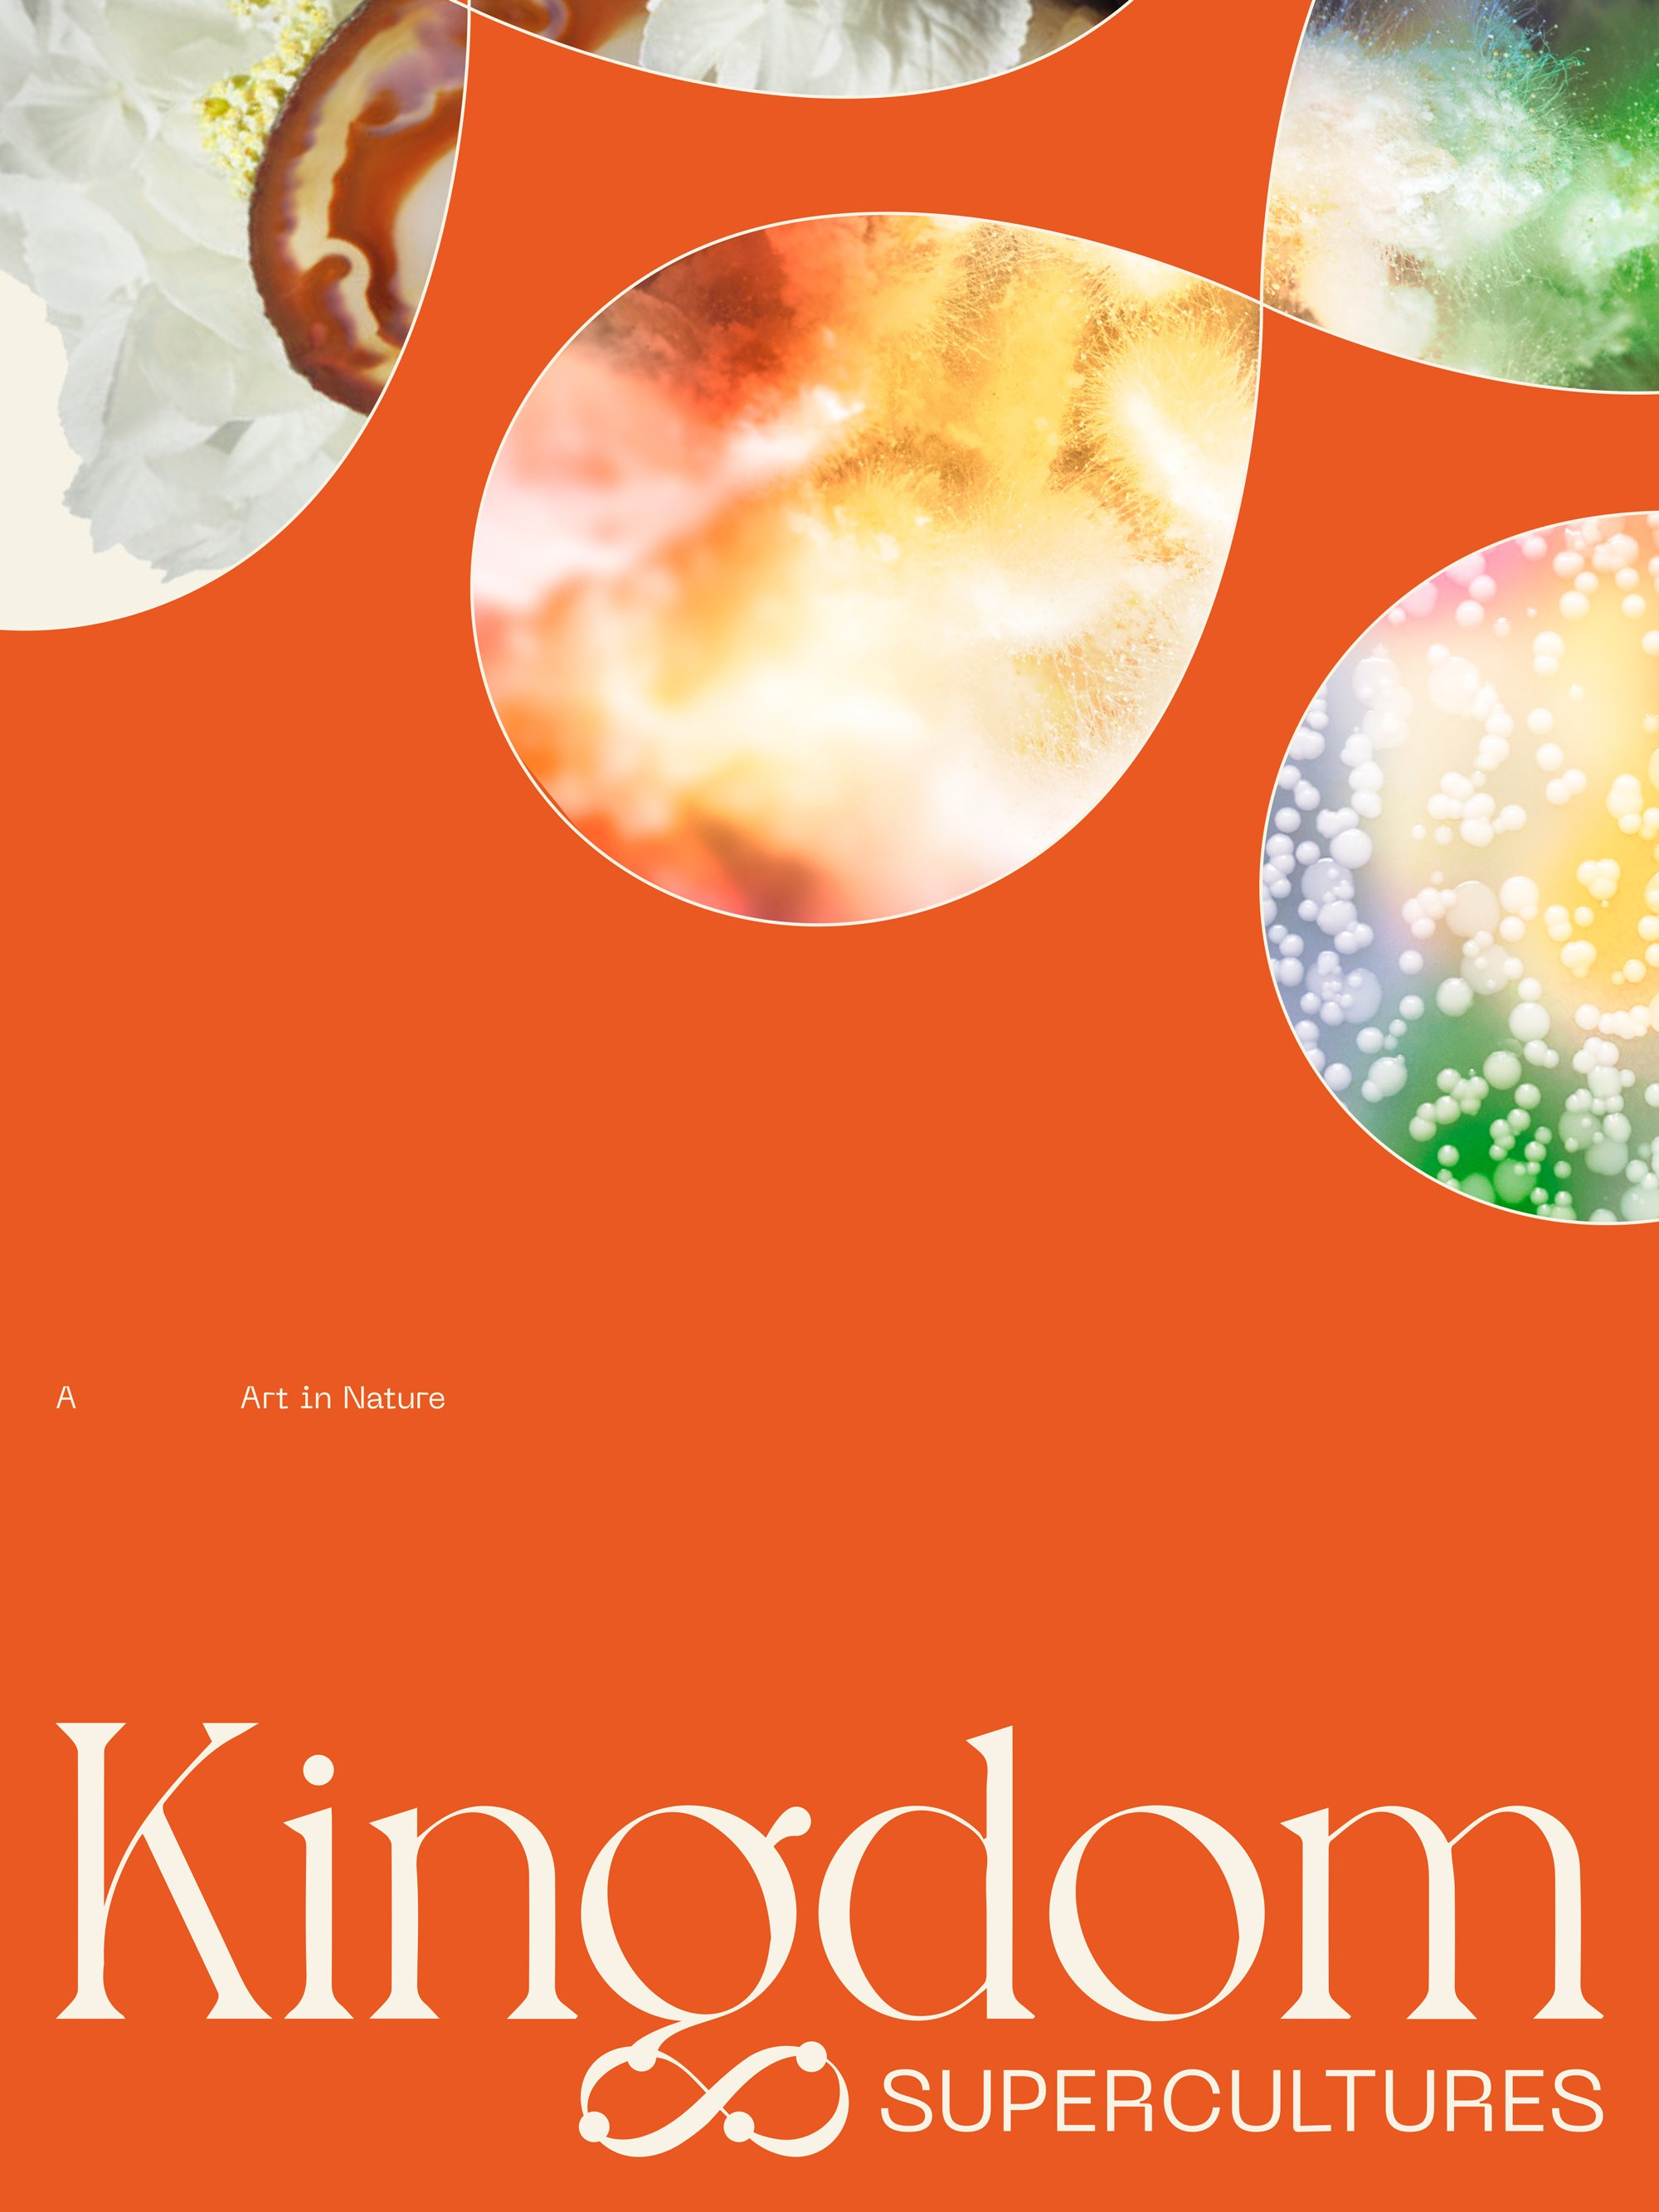 Kingdom Supercultures orange poster with custom infinity sign graphics, designed by RoAndCo